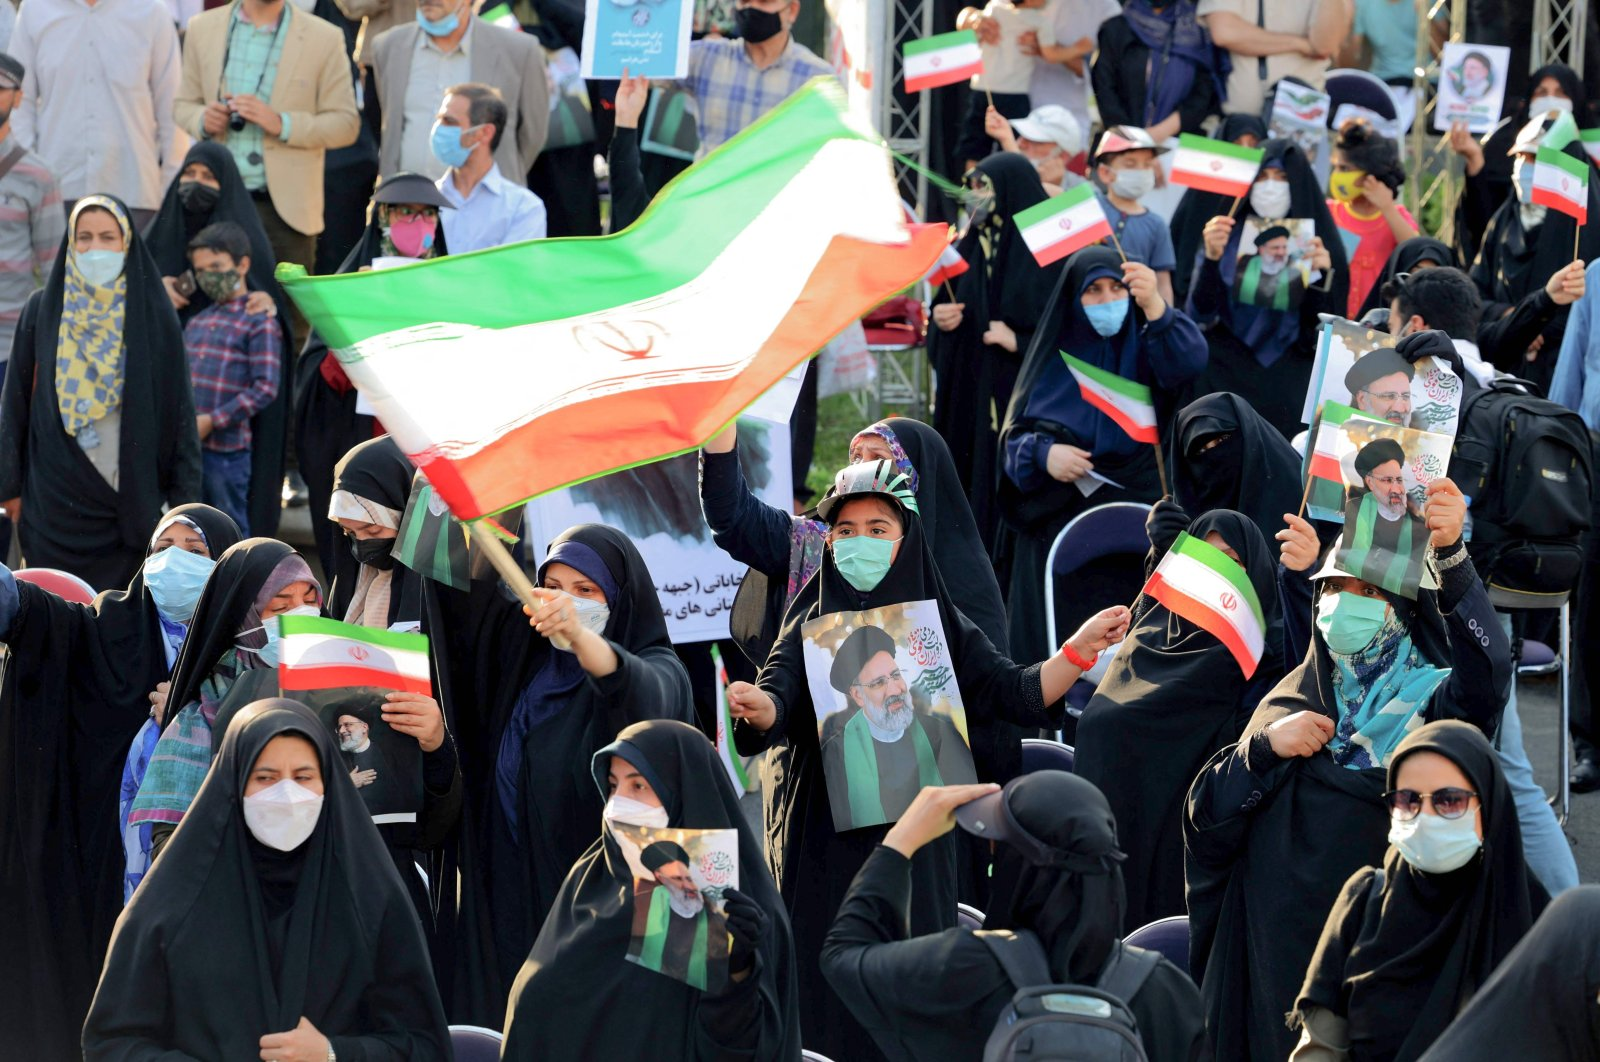 Supporters of Iranian ultraconservative presidential candidate Ebrahim Raisi carry posters bearing his portrait and wave national flags as they attend a rally ahead of the Islamic republic's June 18 presidential election, in the capital Tehran, Iran, June 16, 2021. (AFP Photo)